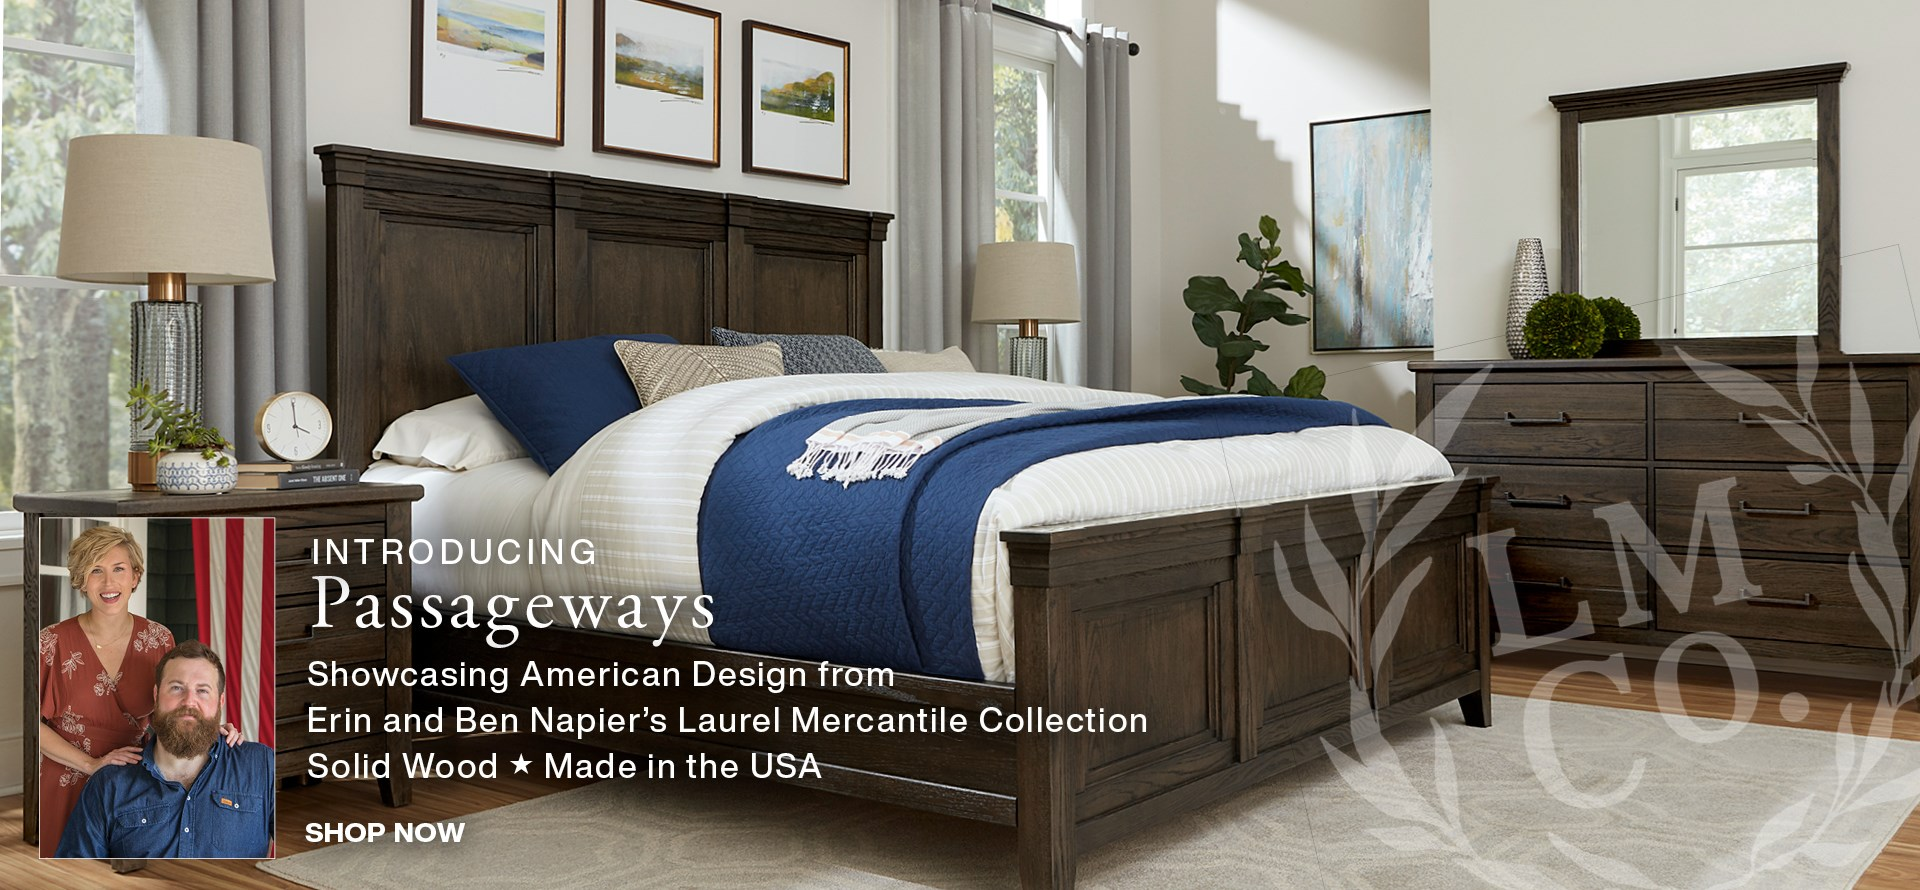 Introducing Passageways solid wood bedroom, made in the USA